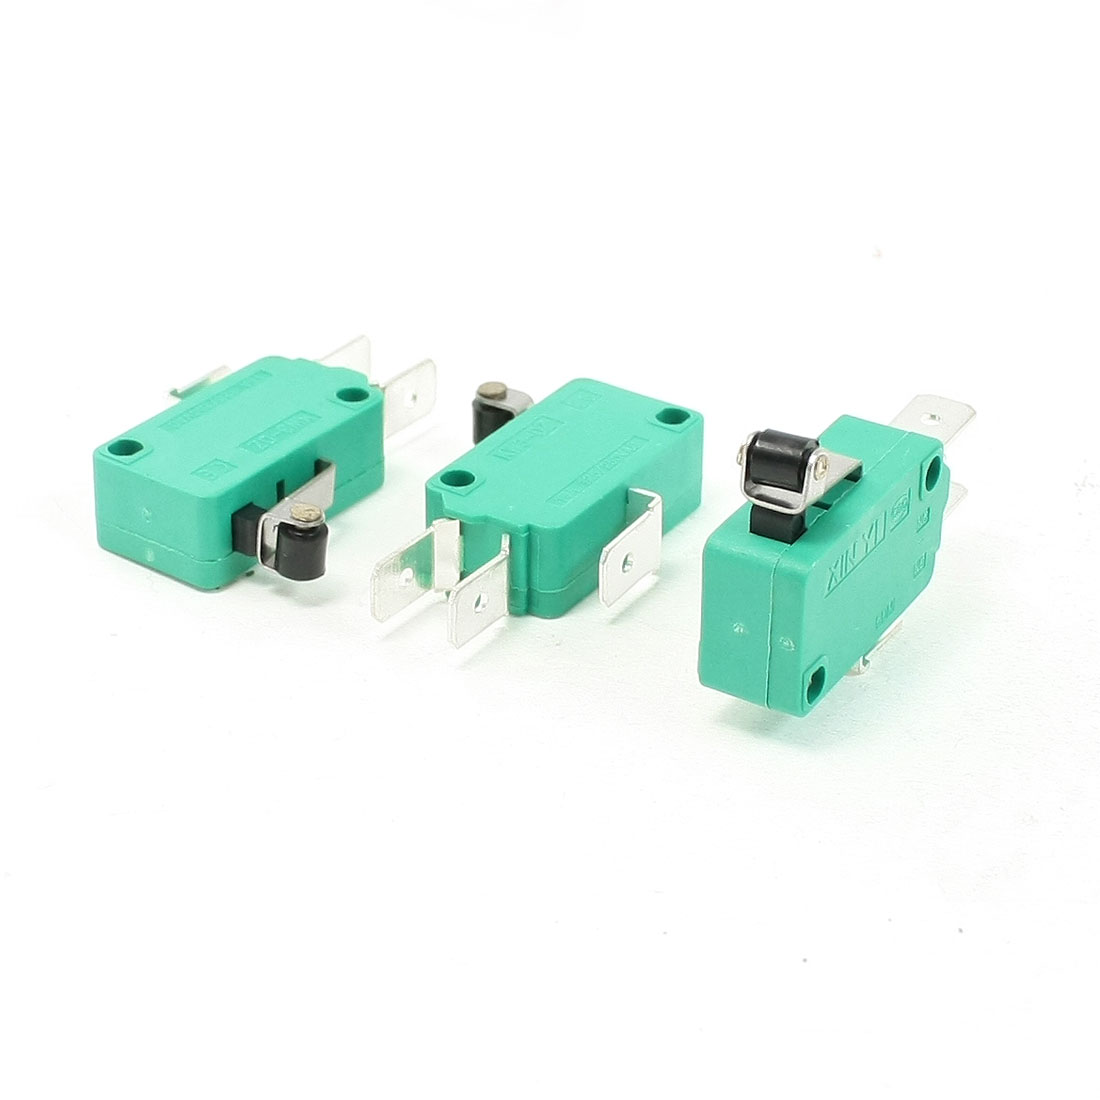 3 Pcs AC 250V 16A SPDT Short Hinge Roller Lever Miniature Micro Switch Green